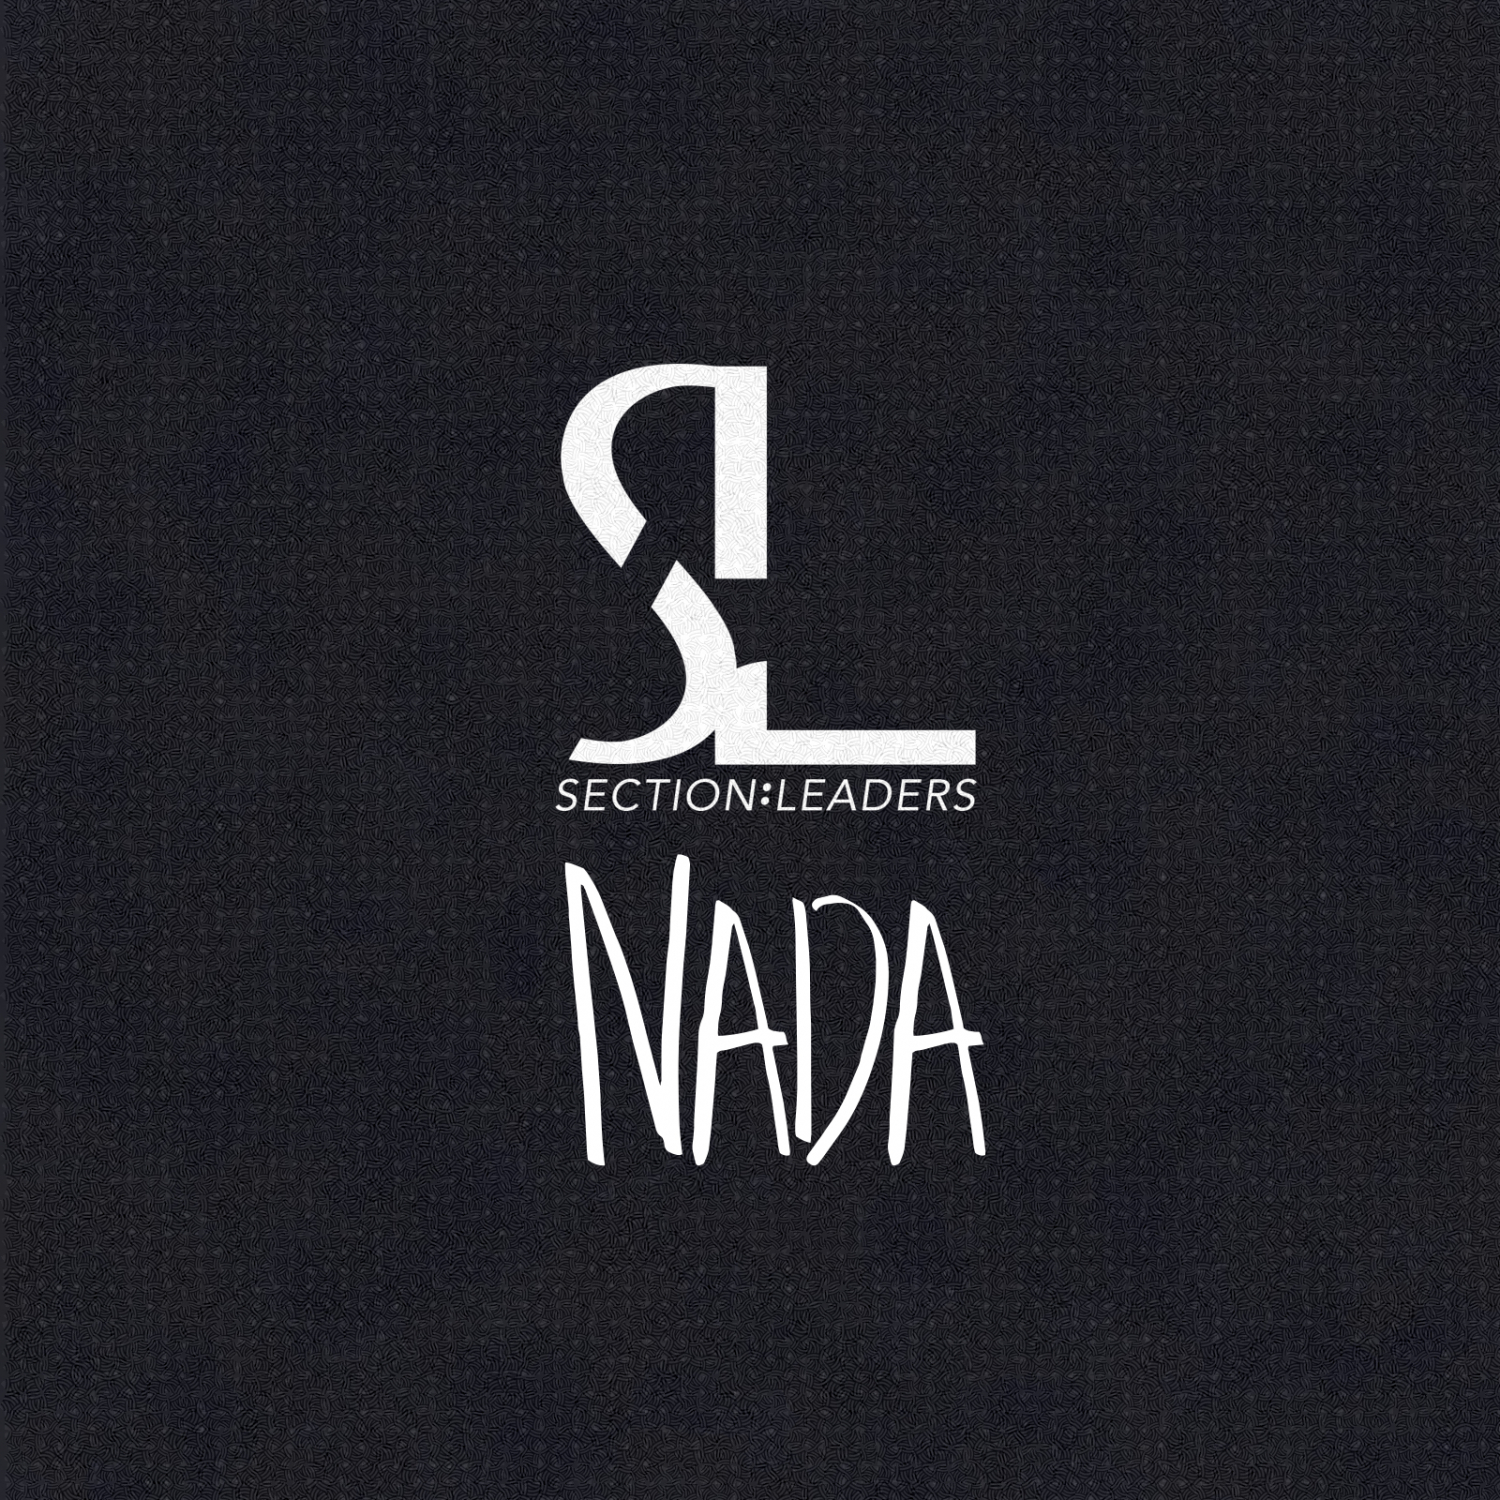 Section Leaders & Maja 7th & LONEgevity & Gritts - Nada (Say Nothing) (Original Mix)